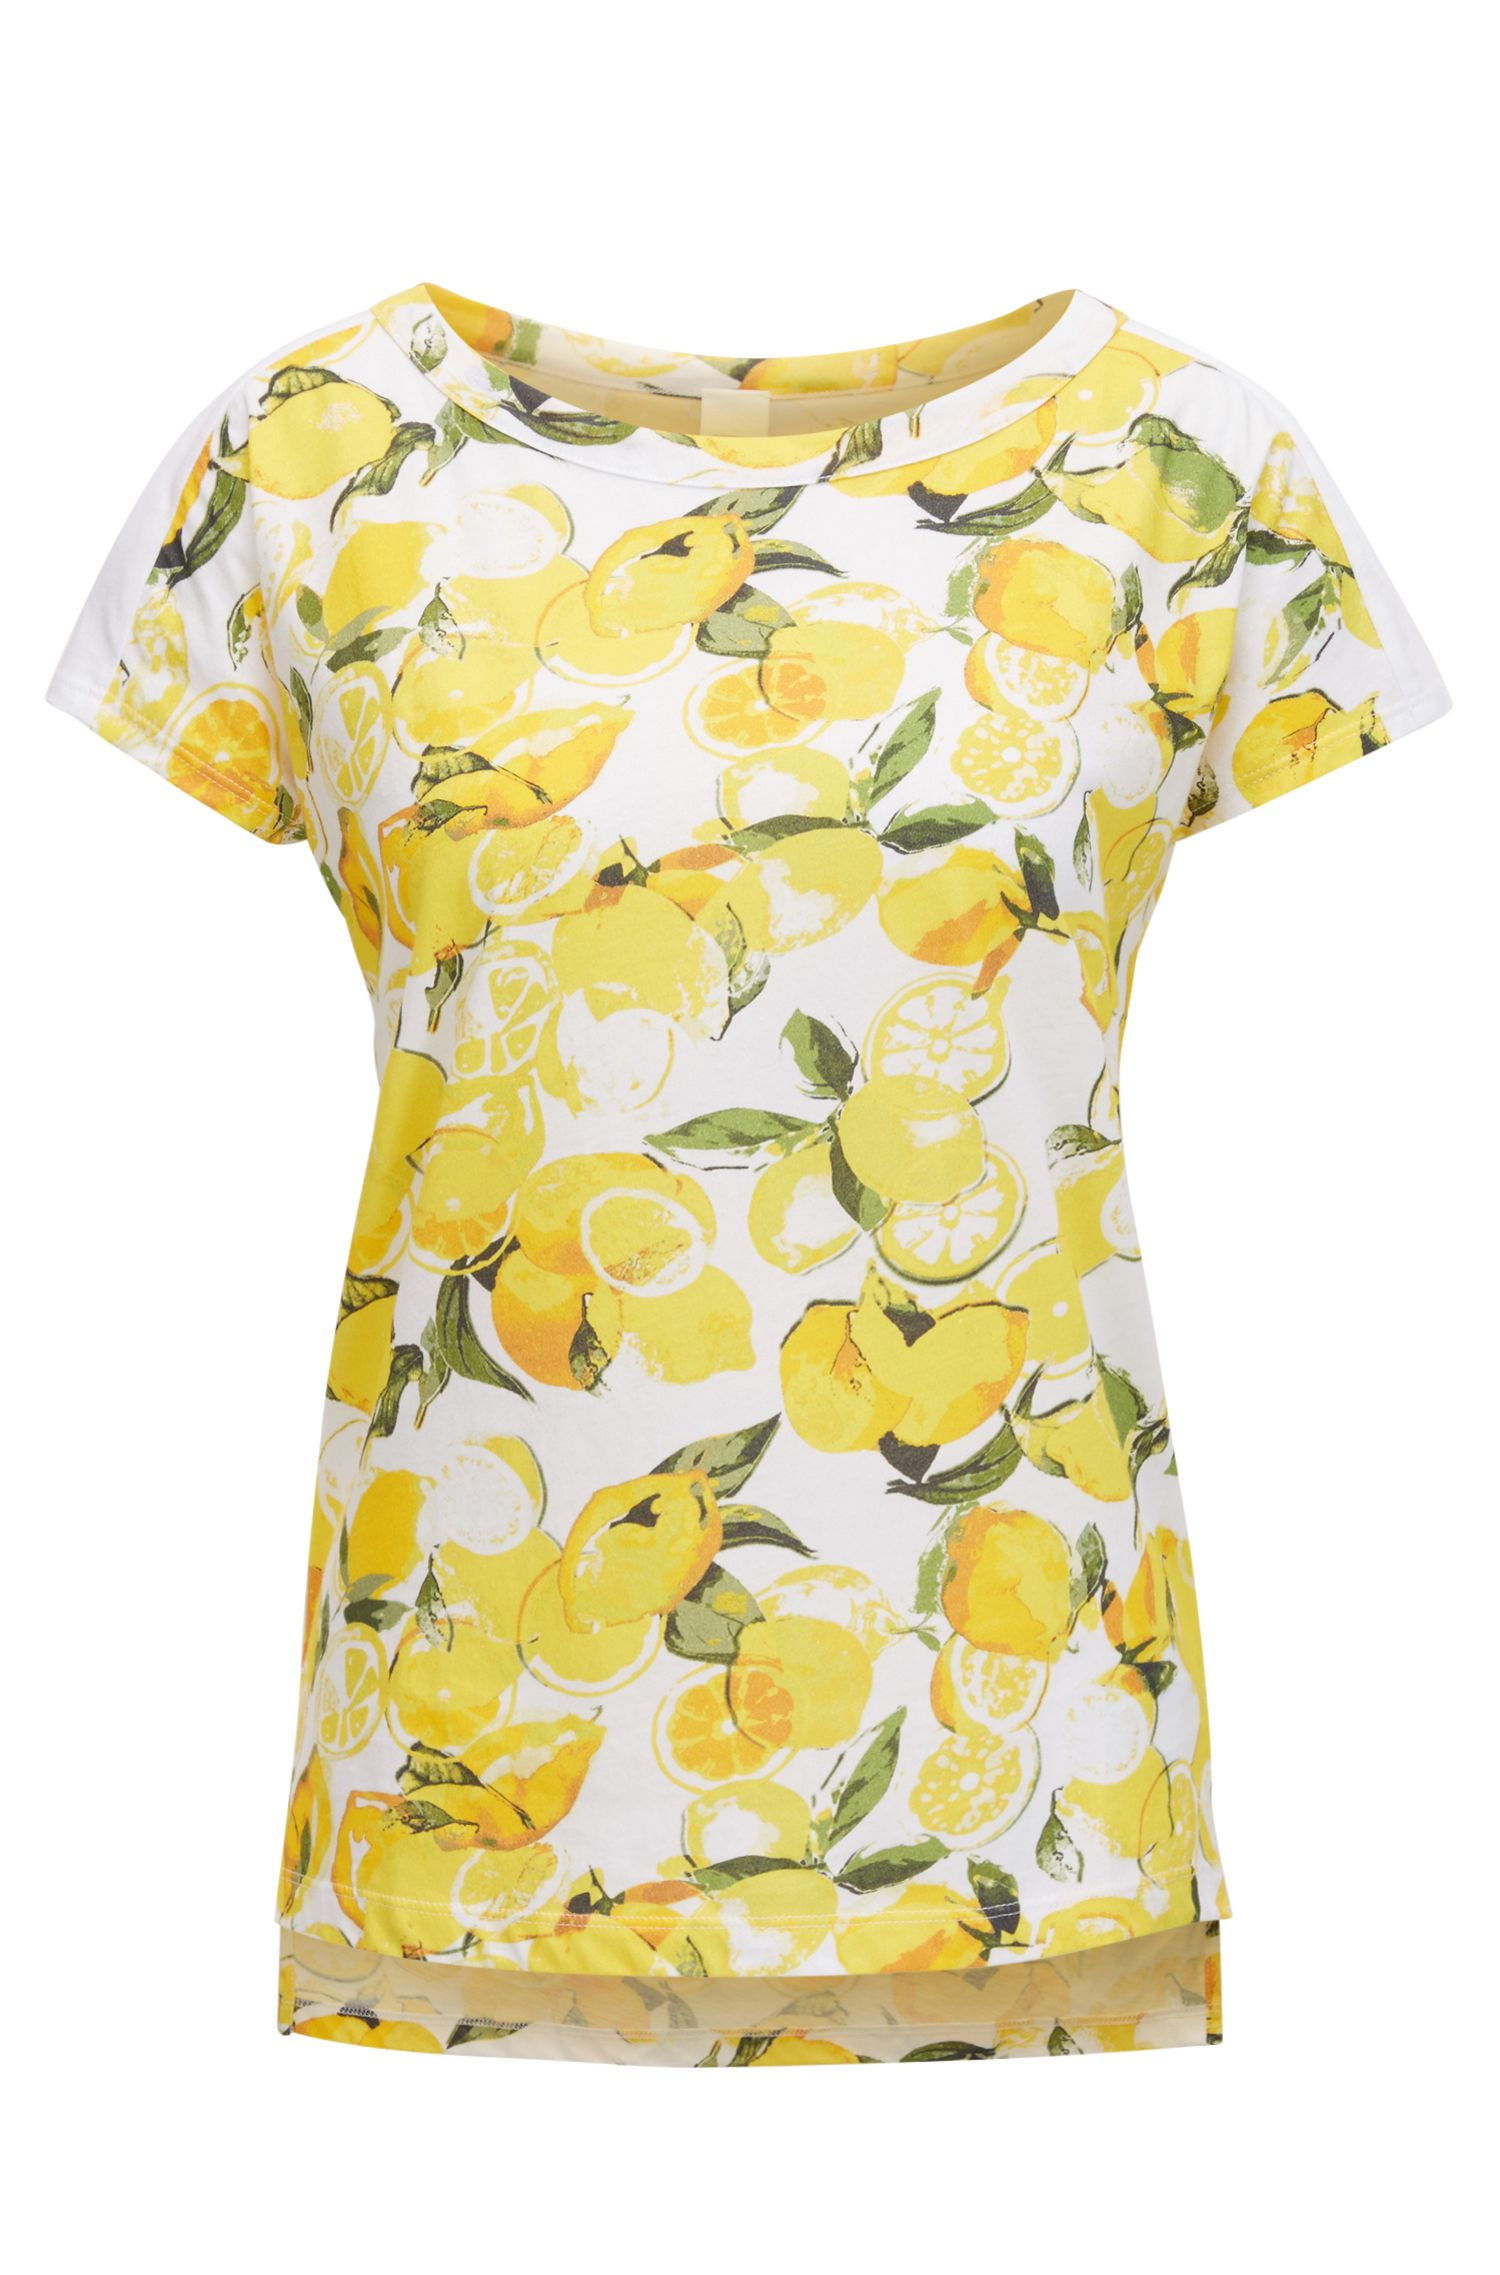 T-shirt Relaxed Fit en coton à imprimé citron